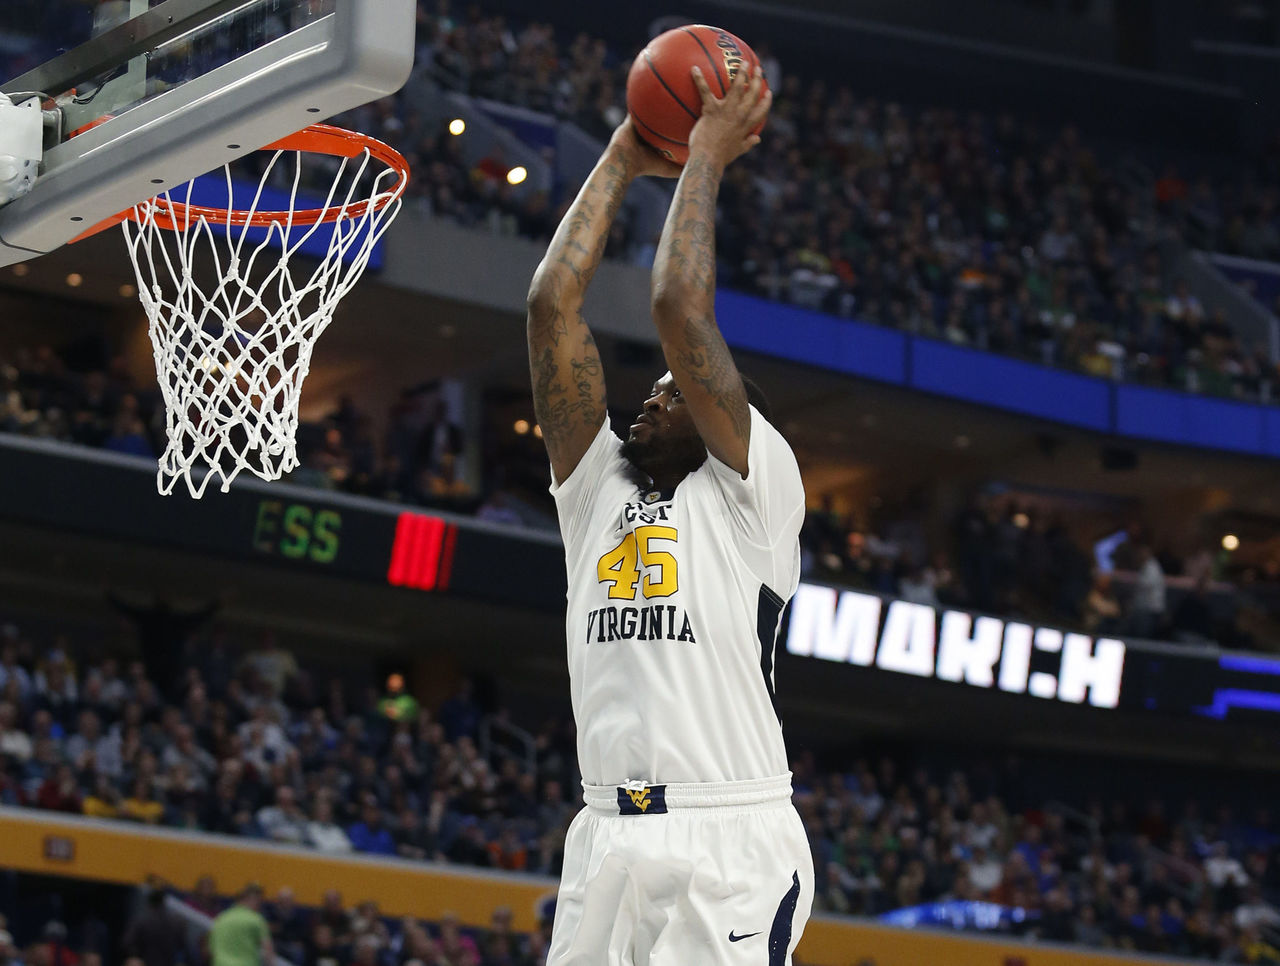 Cropped 2017 03 18t182027z 1314480349 nocid rtrmadp 3 ncaa basketball ncaa tournament second round notre dame vs west virginia